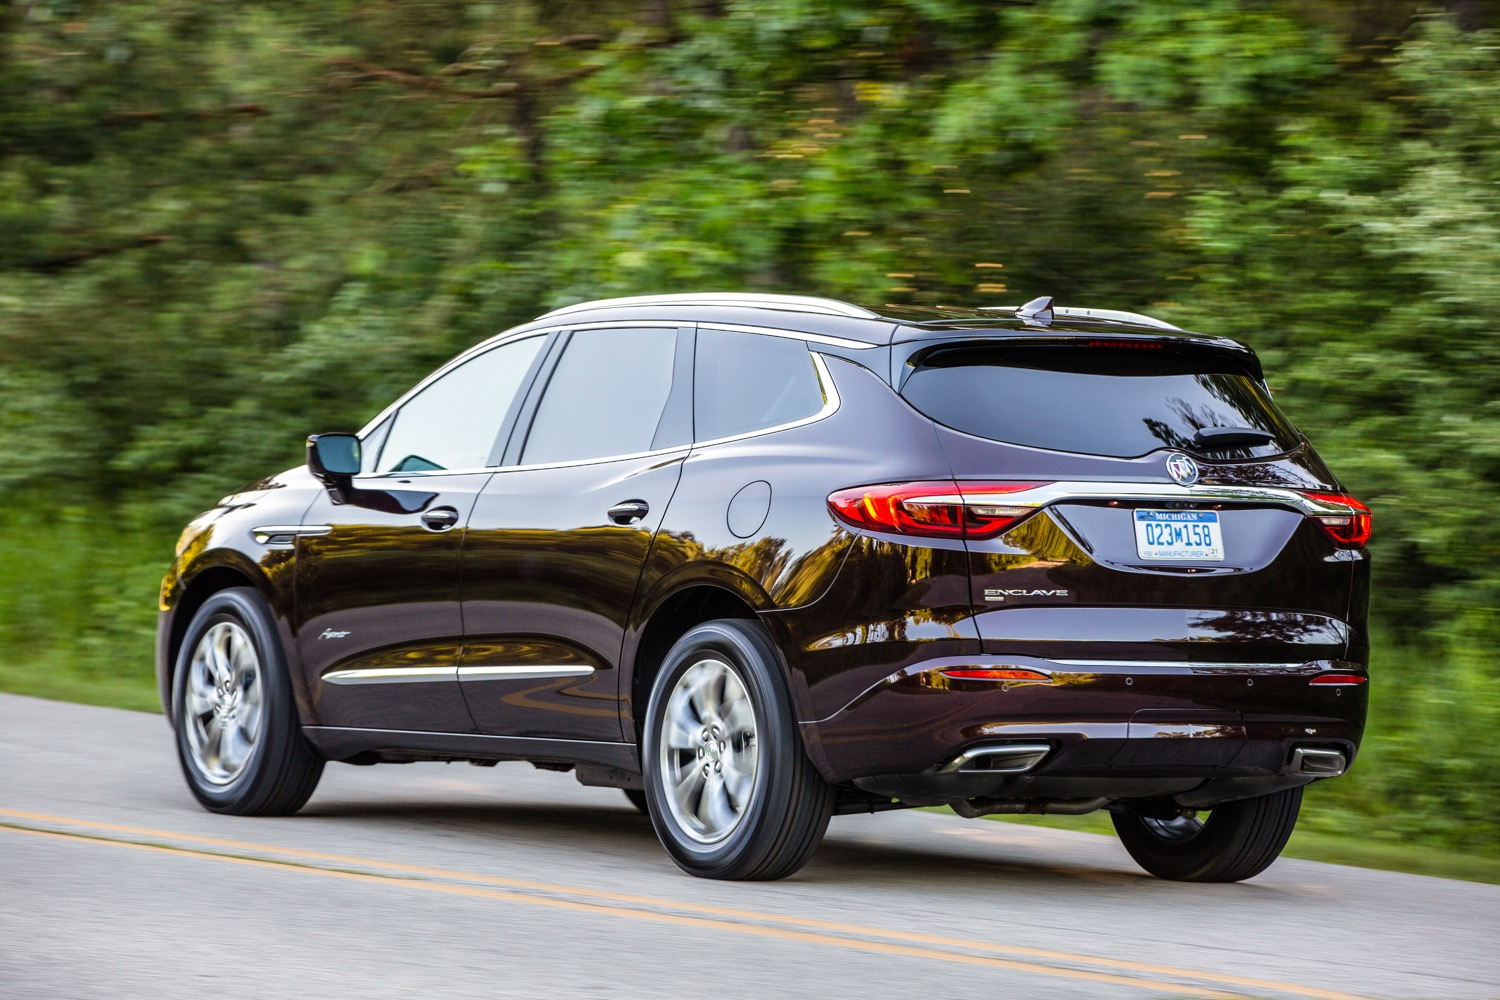 All The Changes Made To The 2020 Buick Enclave | Gm Authority 2021 Buick Enclave Trims, Transmission Problems, Used